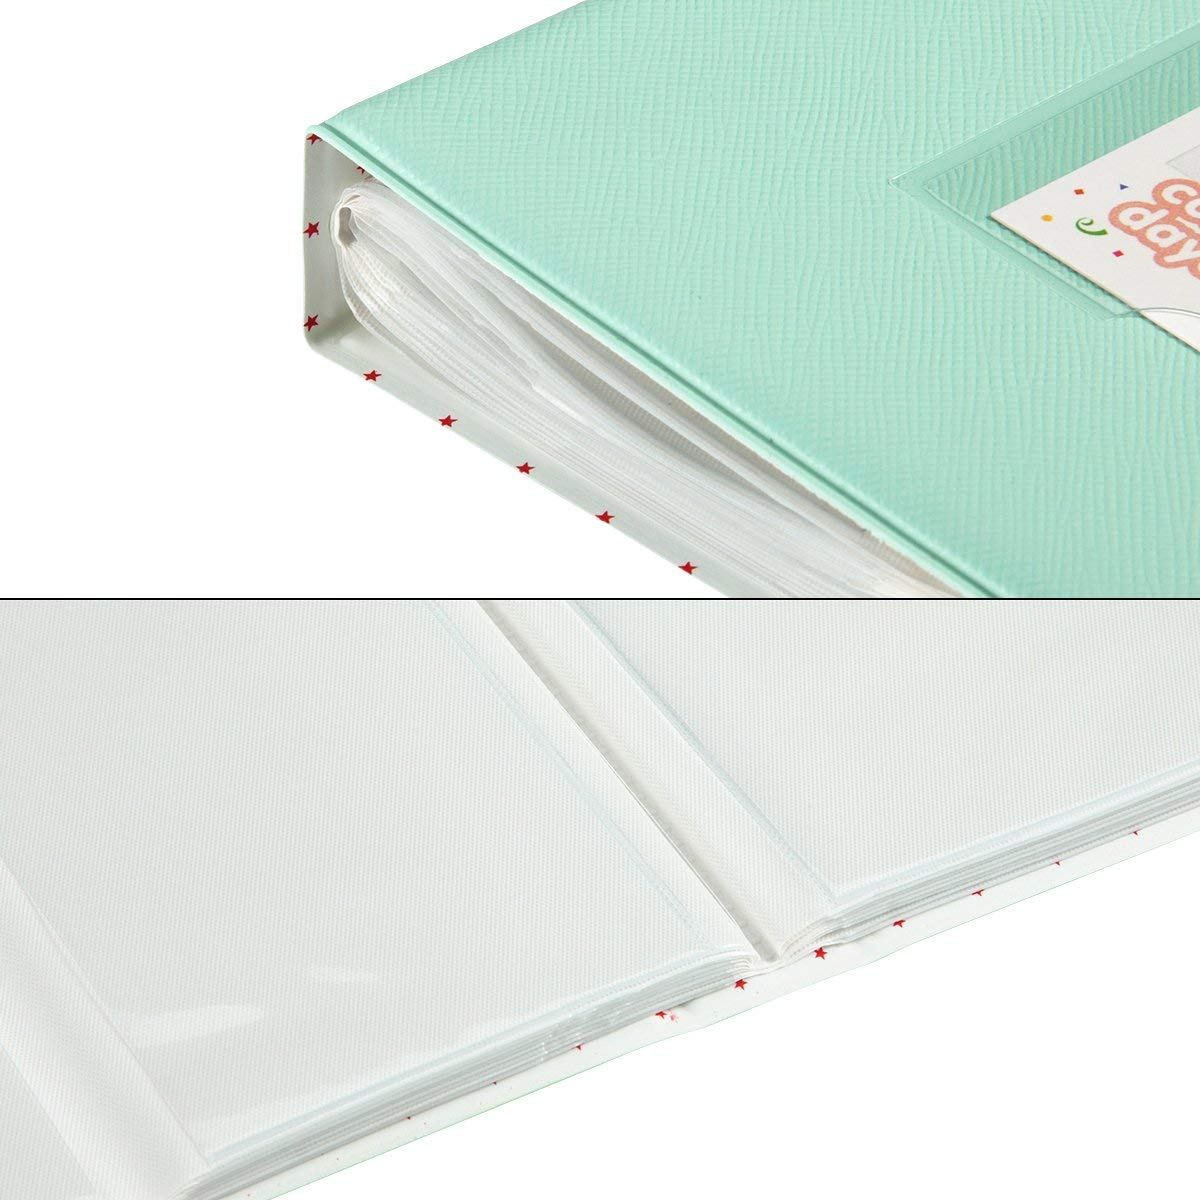 CAIUL 128 Pockets  Album for  Instax Mini 7s 8 8+ 9 25 26 50s 70 90 Film, Polaroid PIC300 Z2300 Film (Ice Blue)